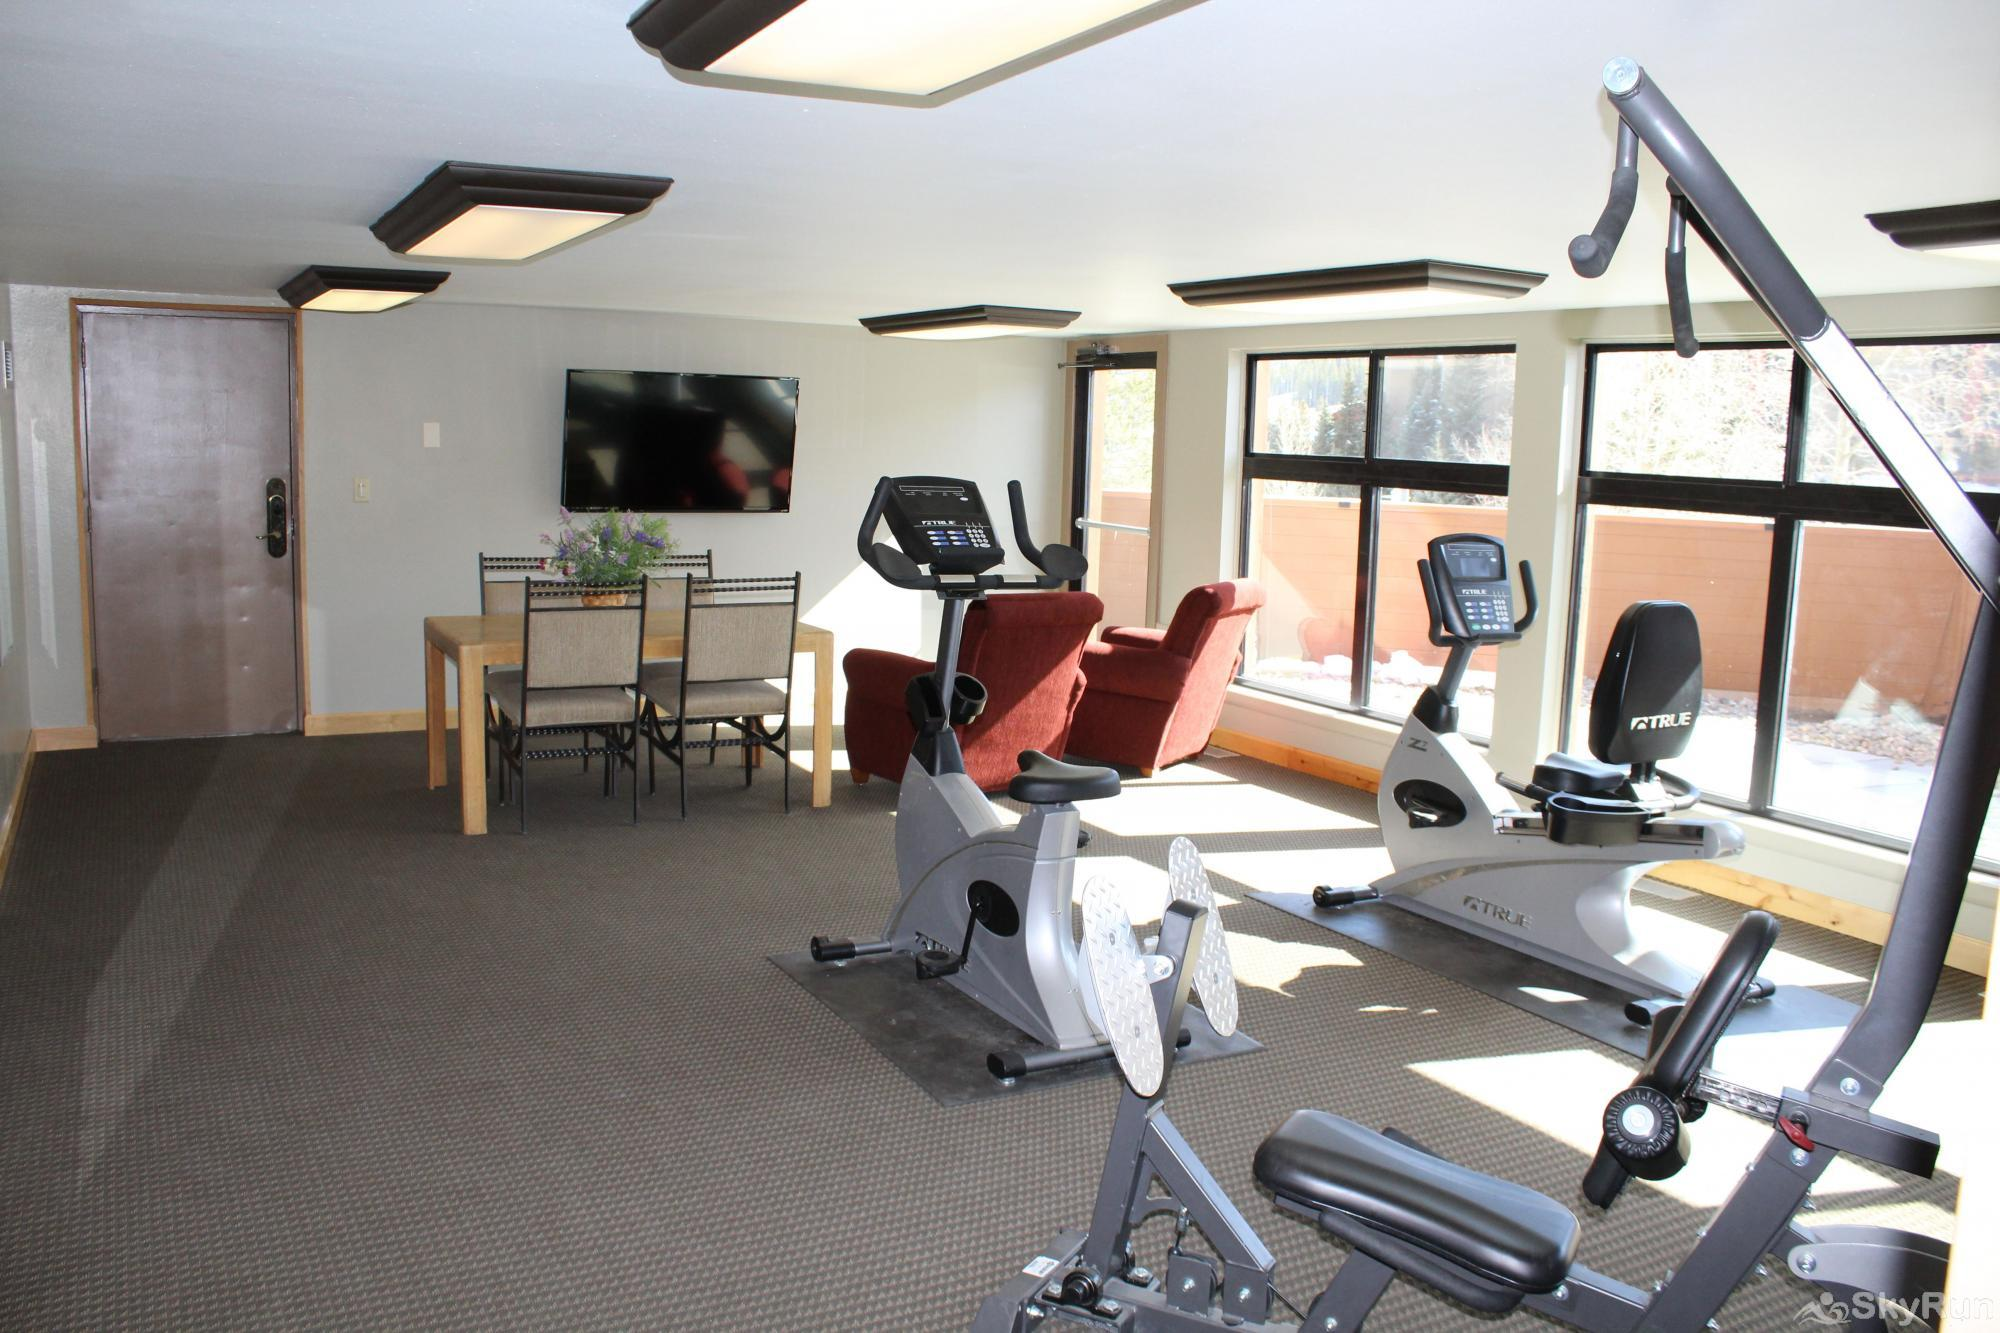 WL481 West Lake Lodge Fitness Room